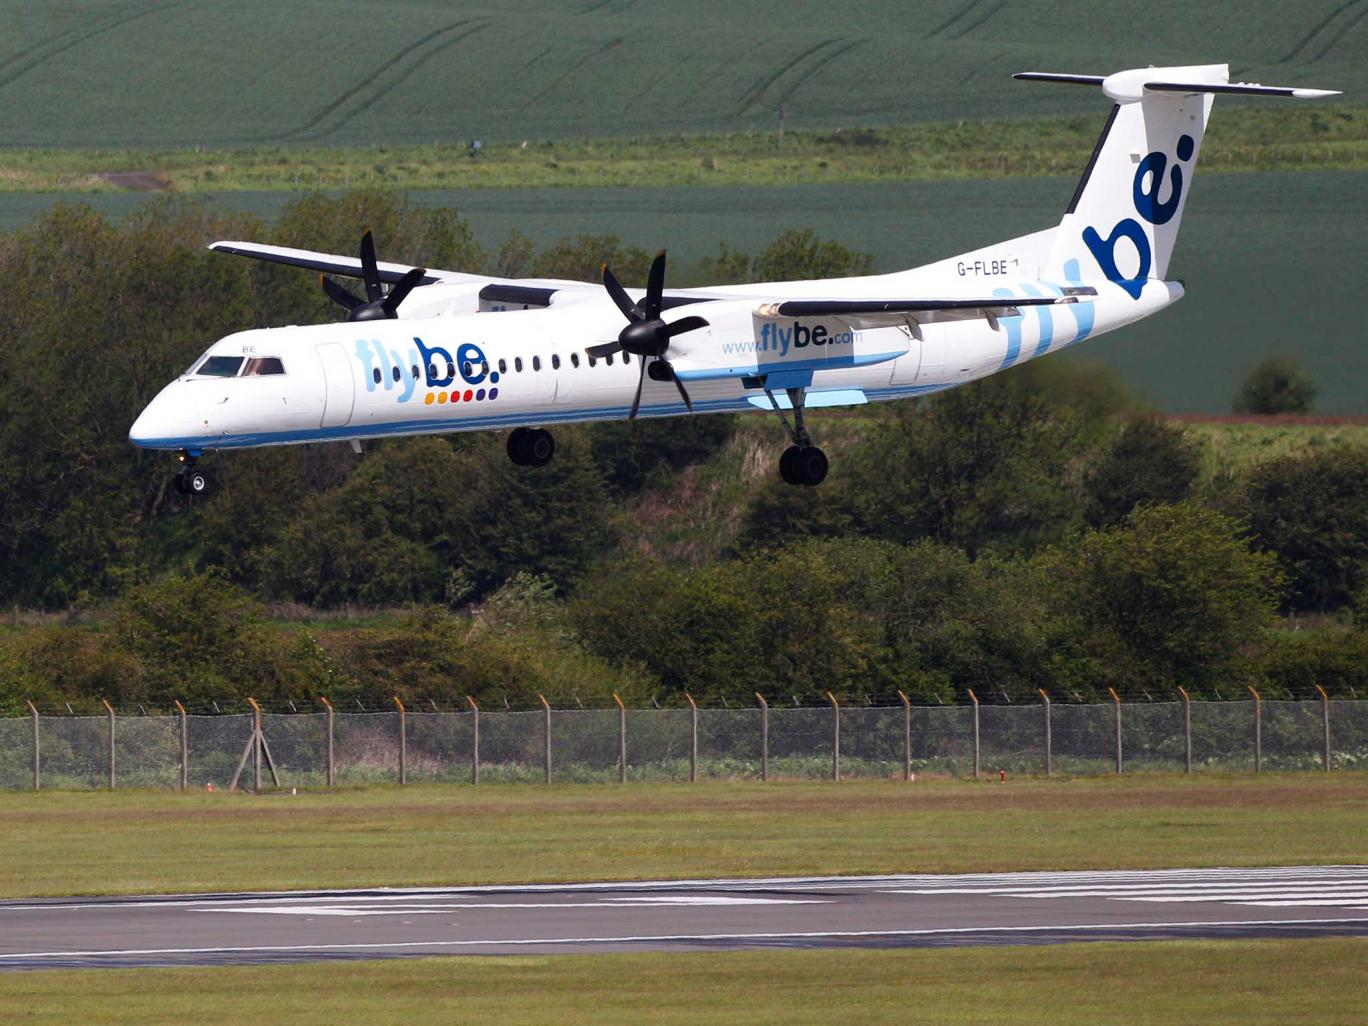 A different Flybe plane is brought down to land